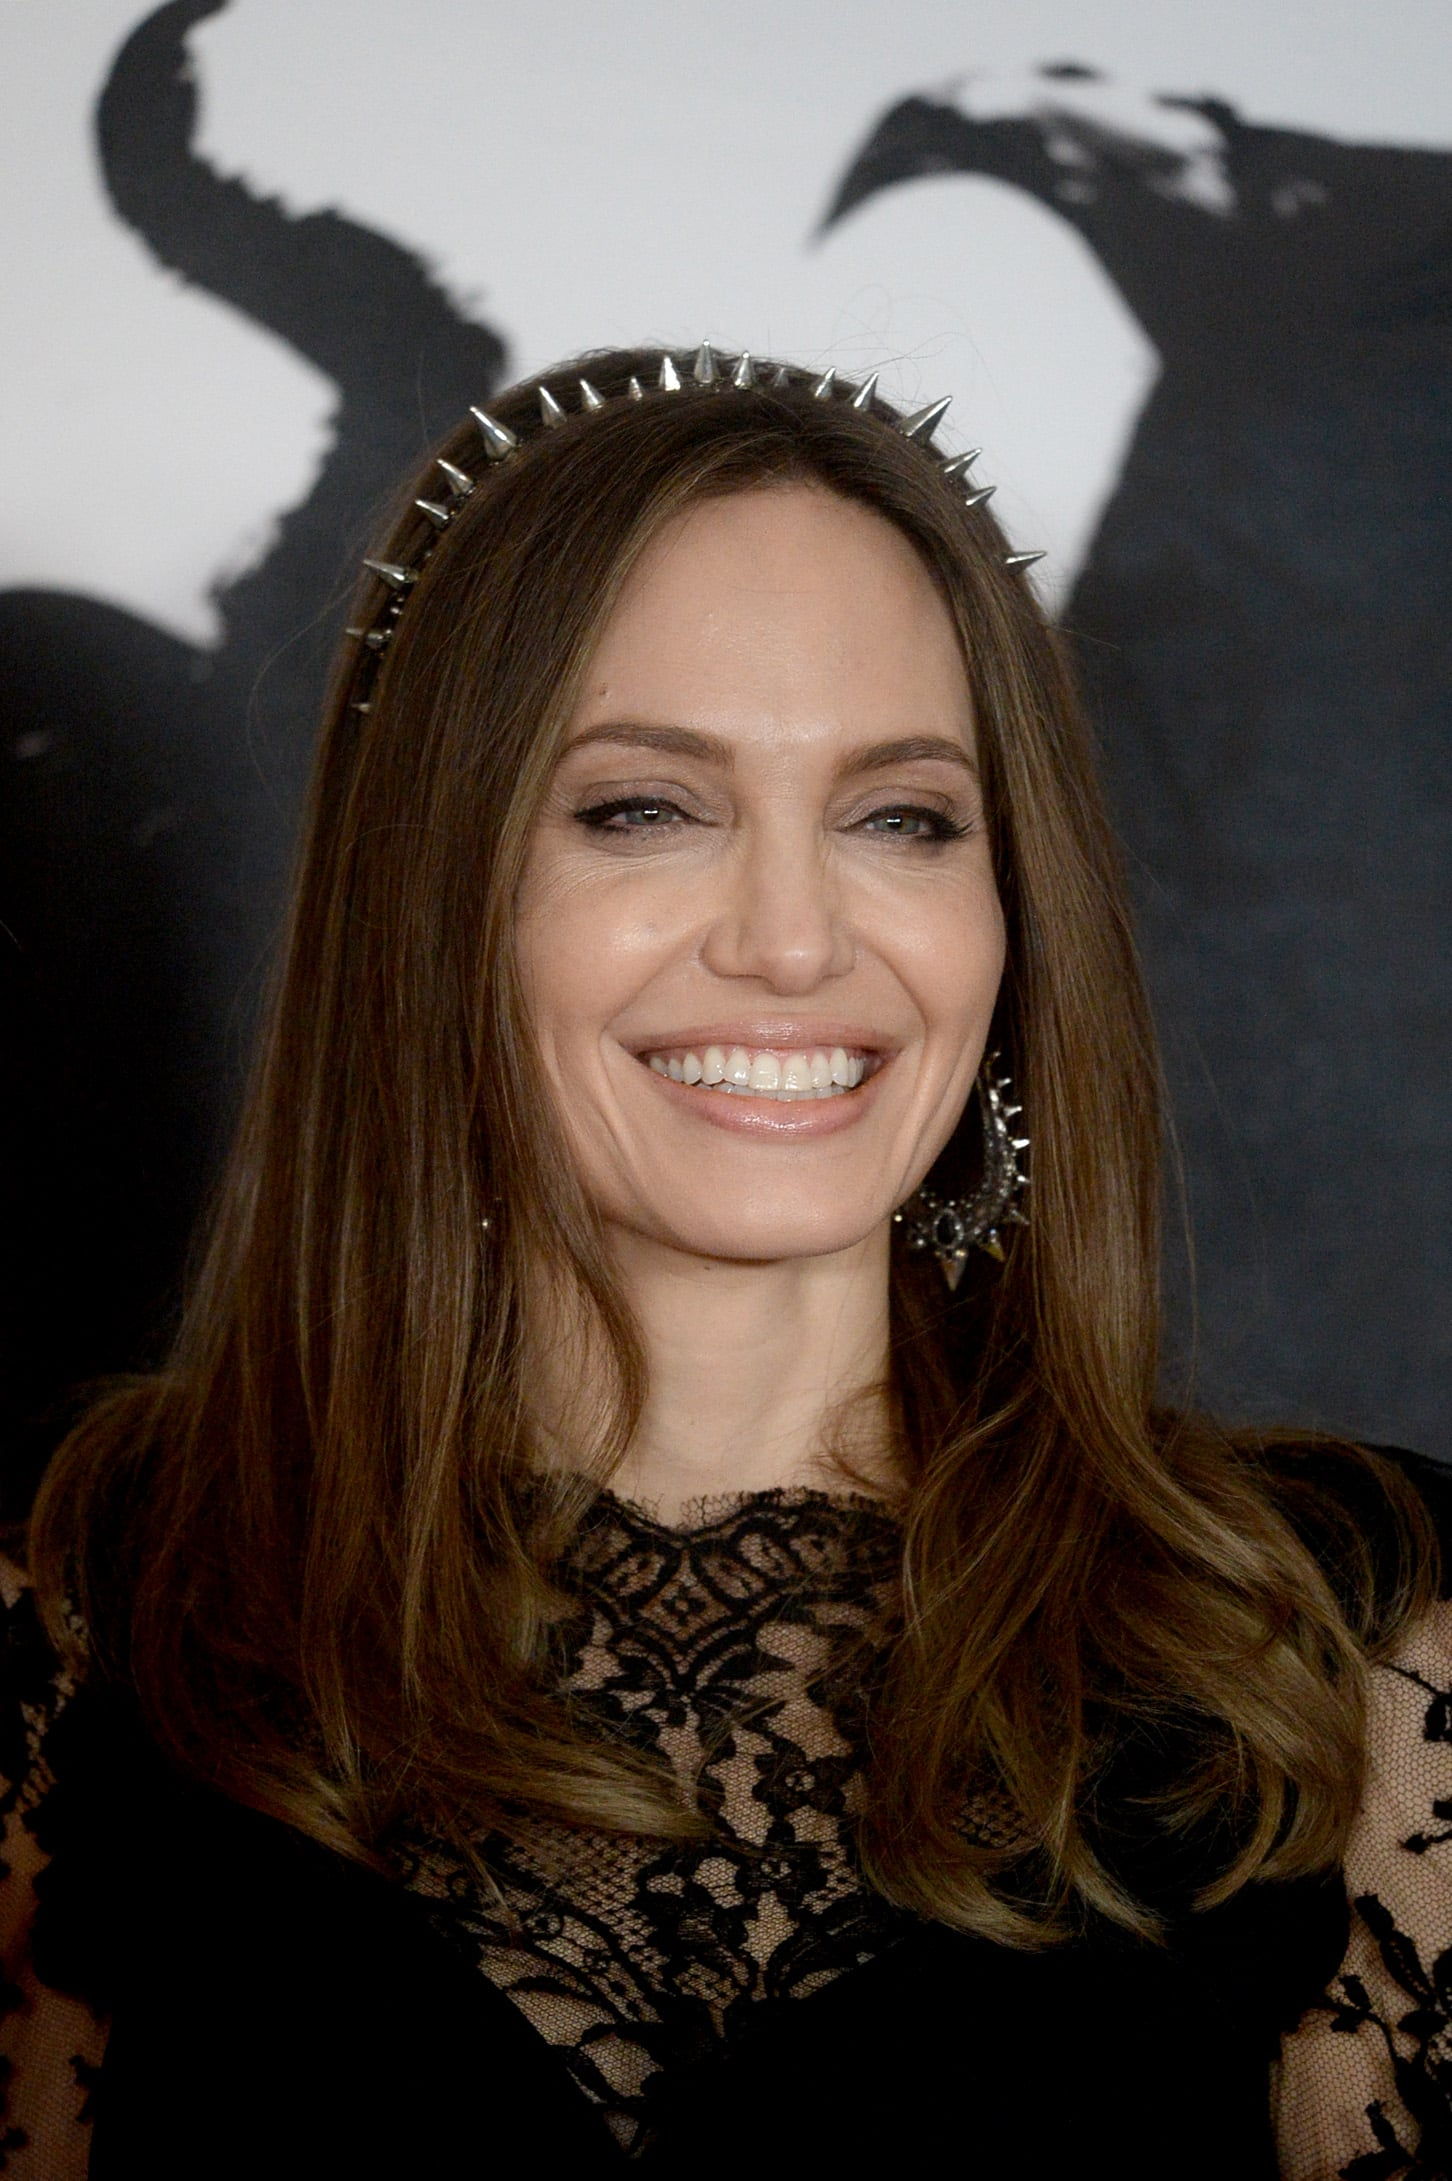 Angelina Jolie At The Maleficent Mistress Of Evil London